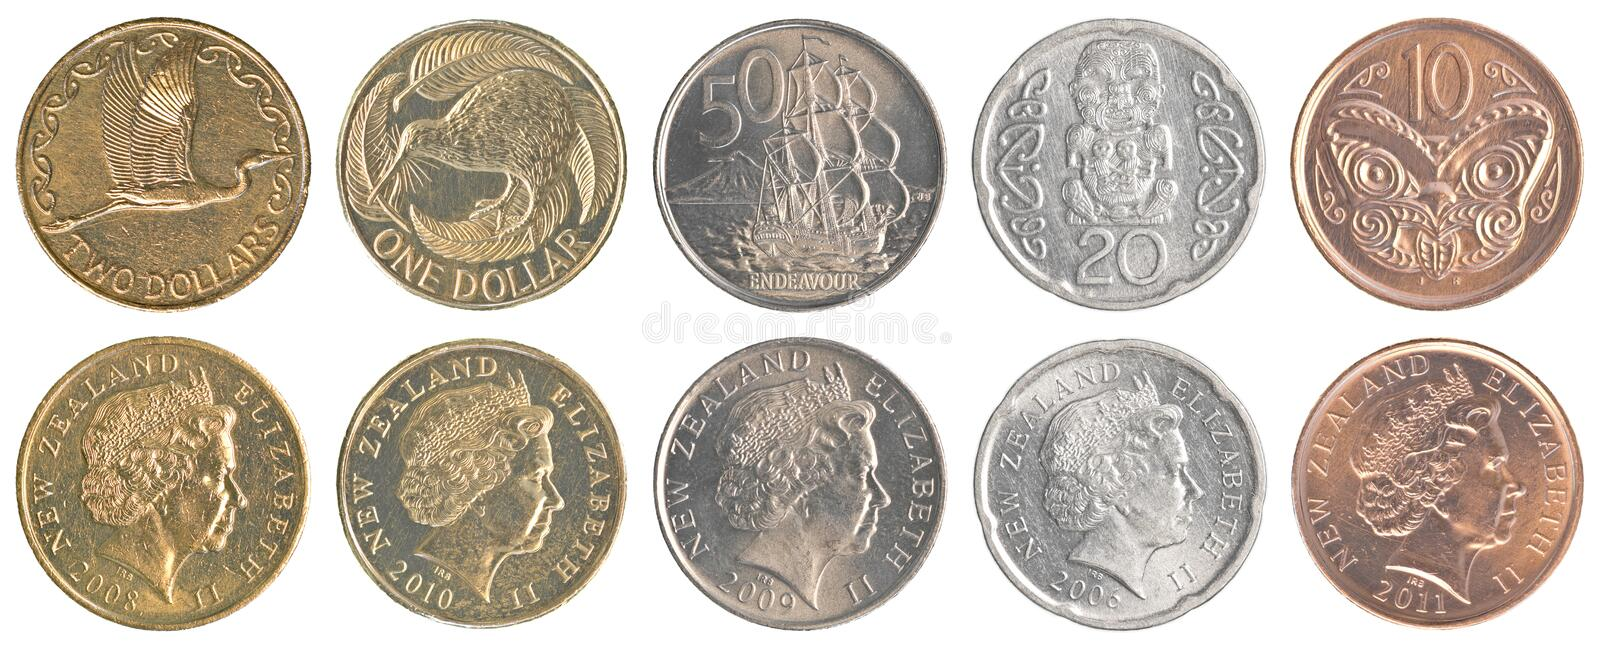 New Zealand Dollar Coins Collection Set Stock Photo